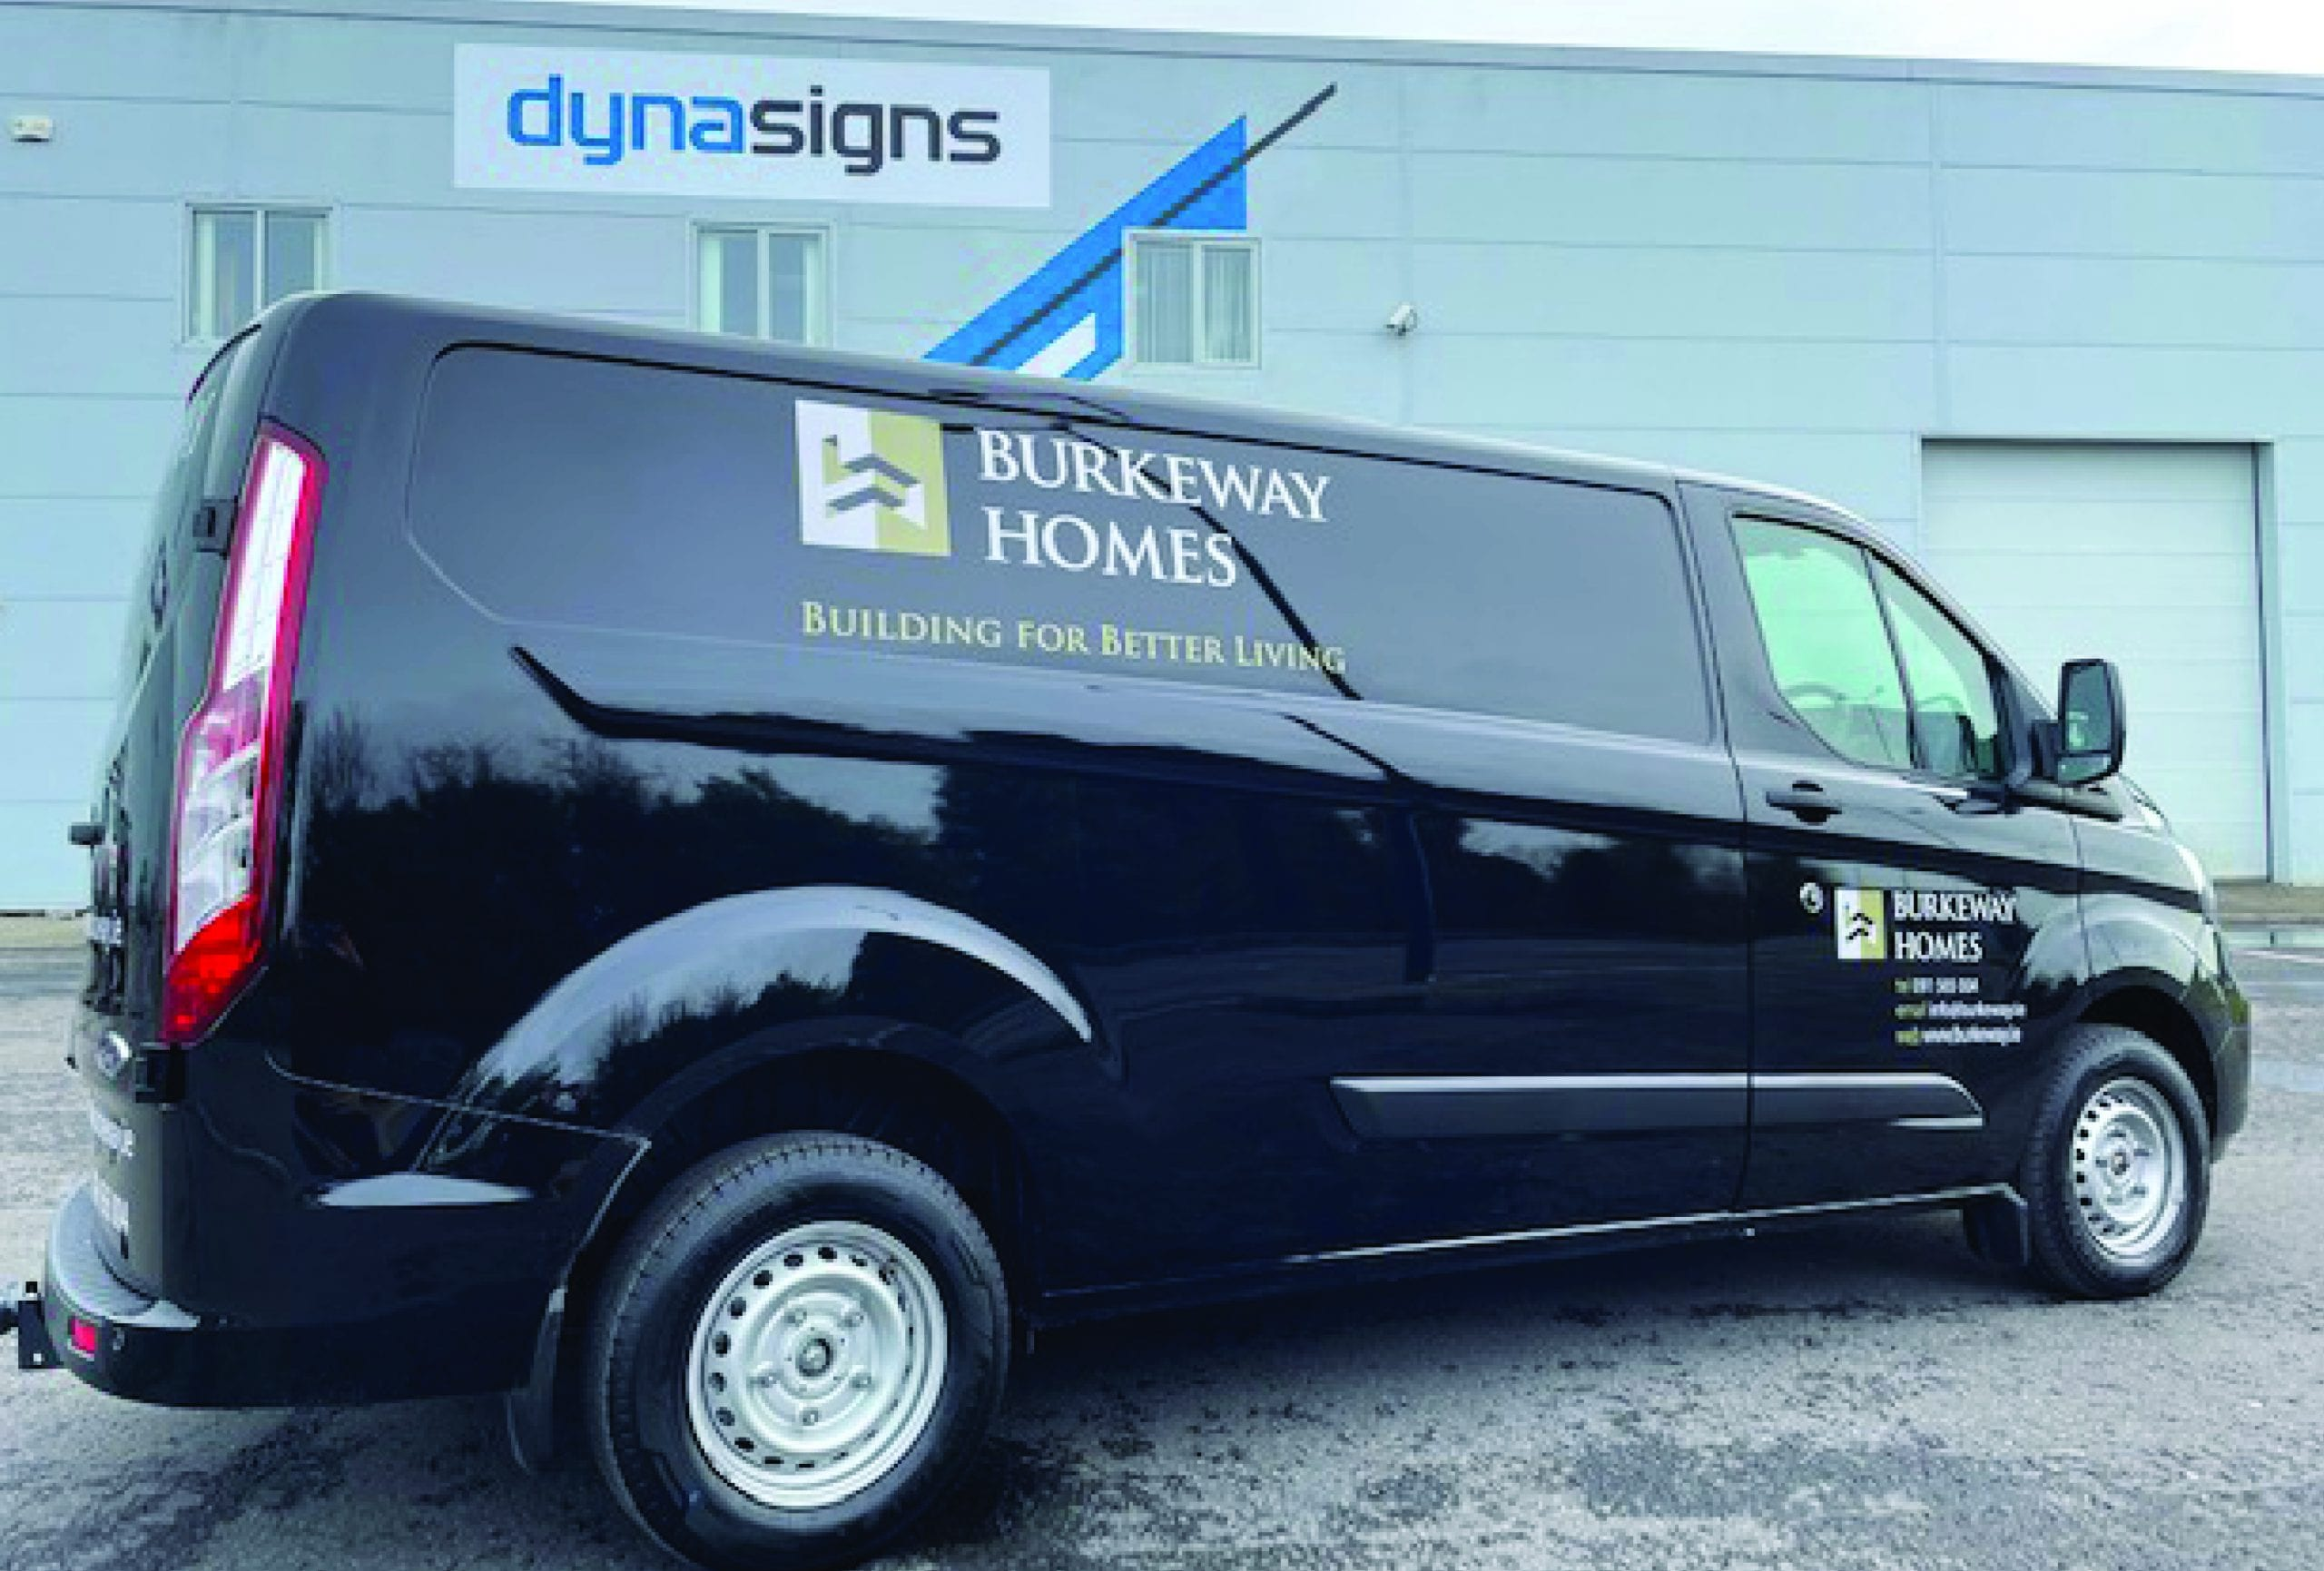 Vinyl graphics for Burkeway Homes